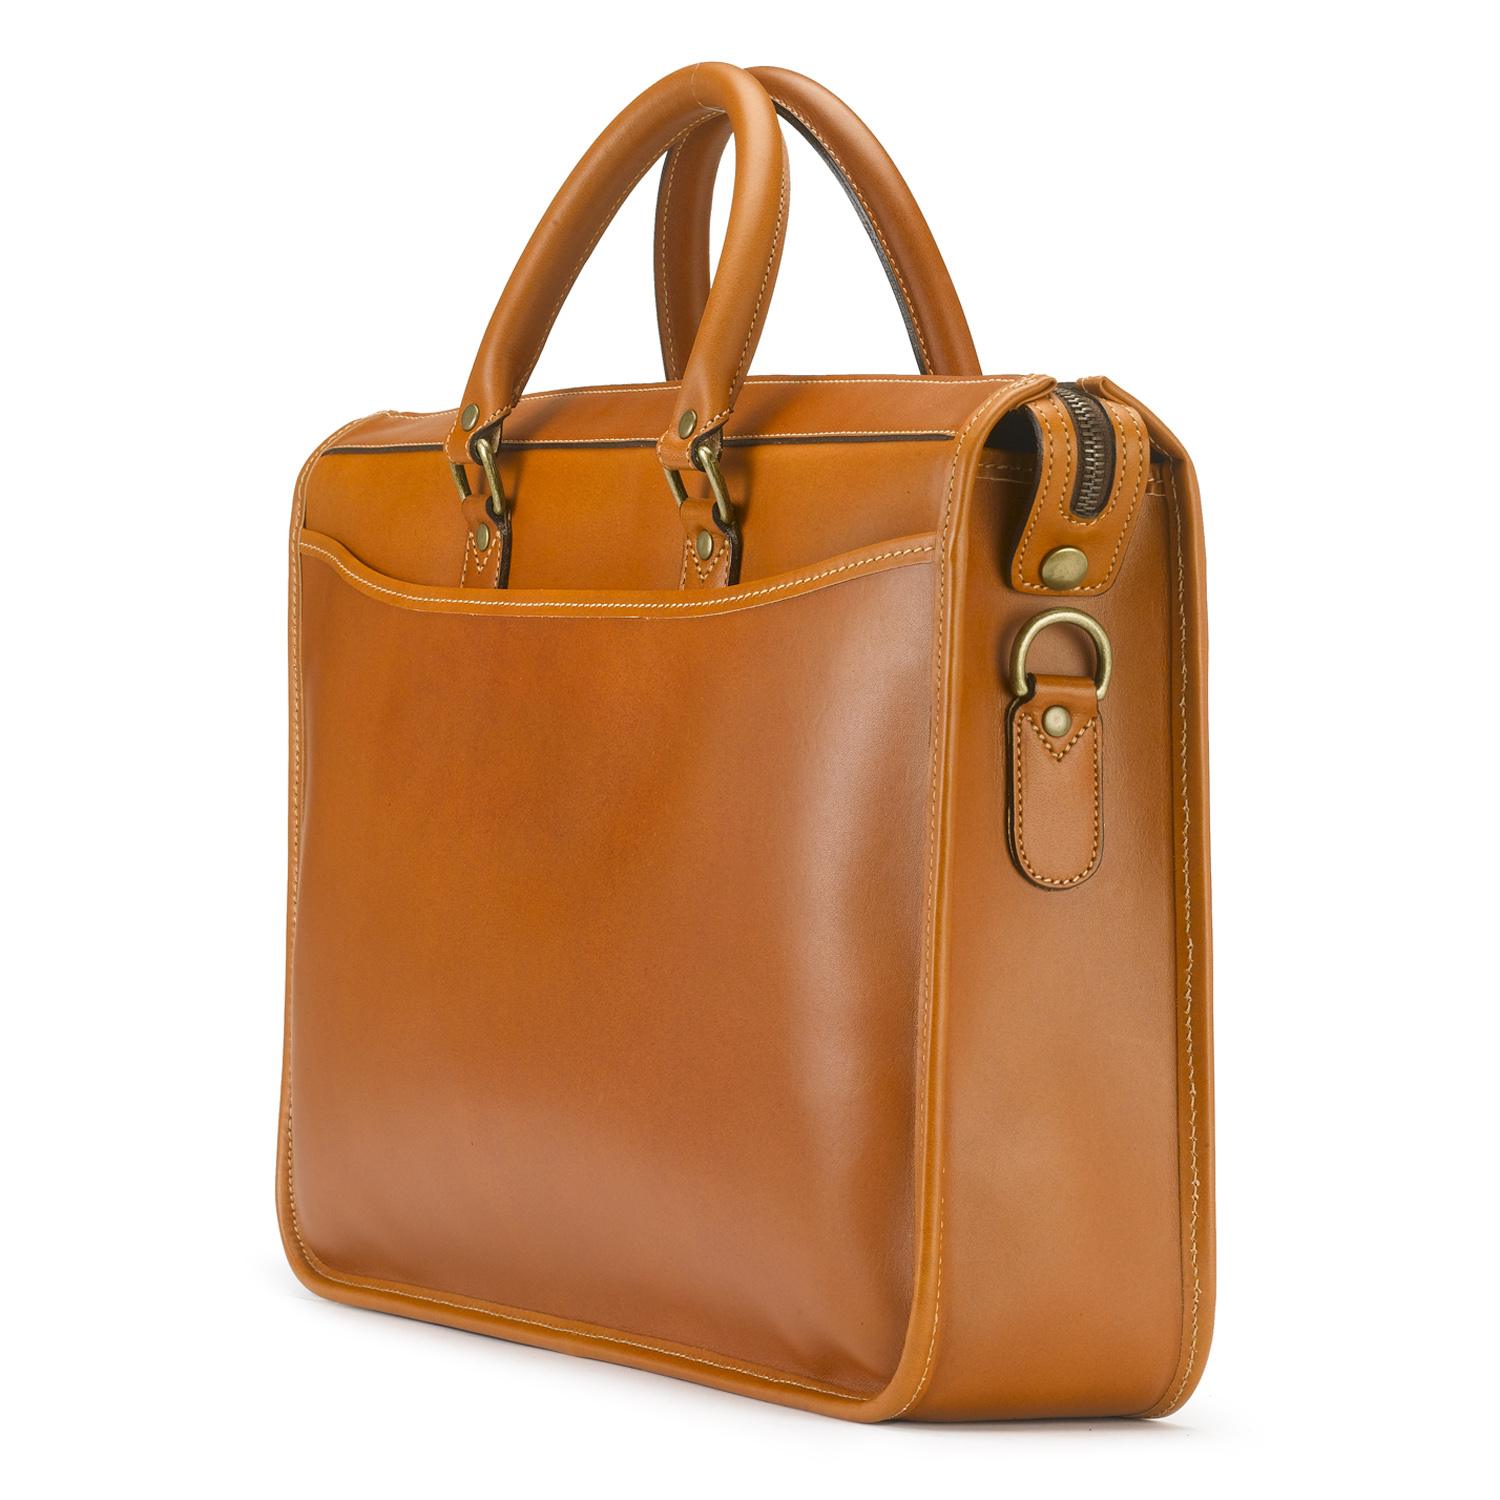 Tusting English-made Leather Briefcase in Tan Leather